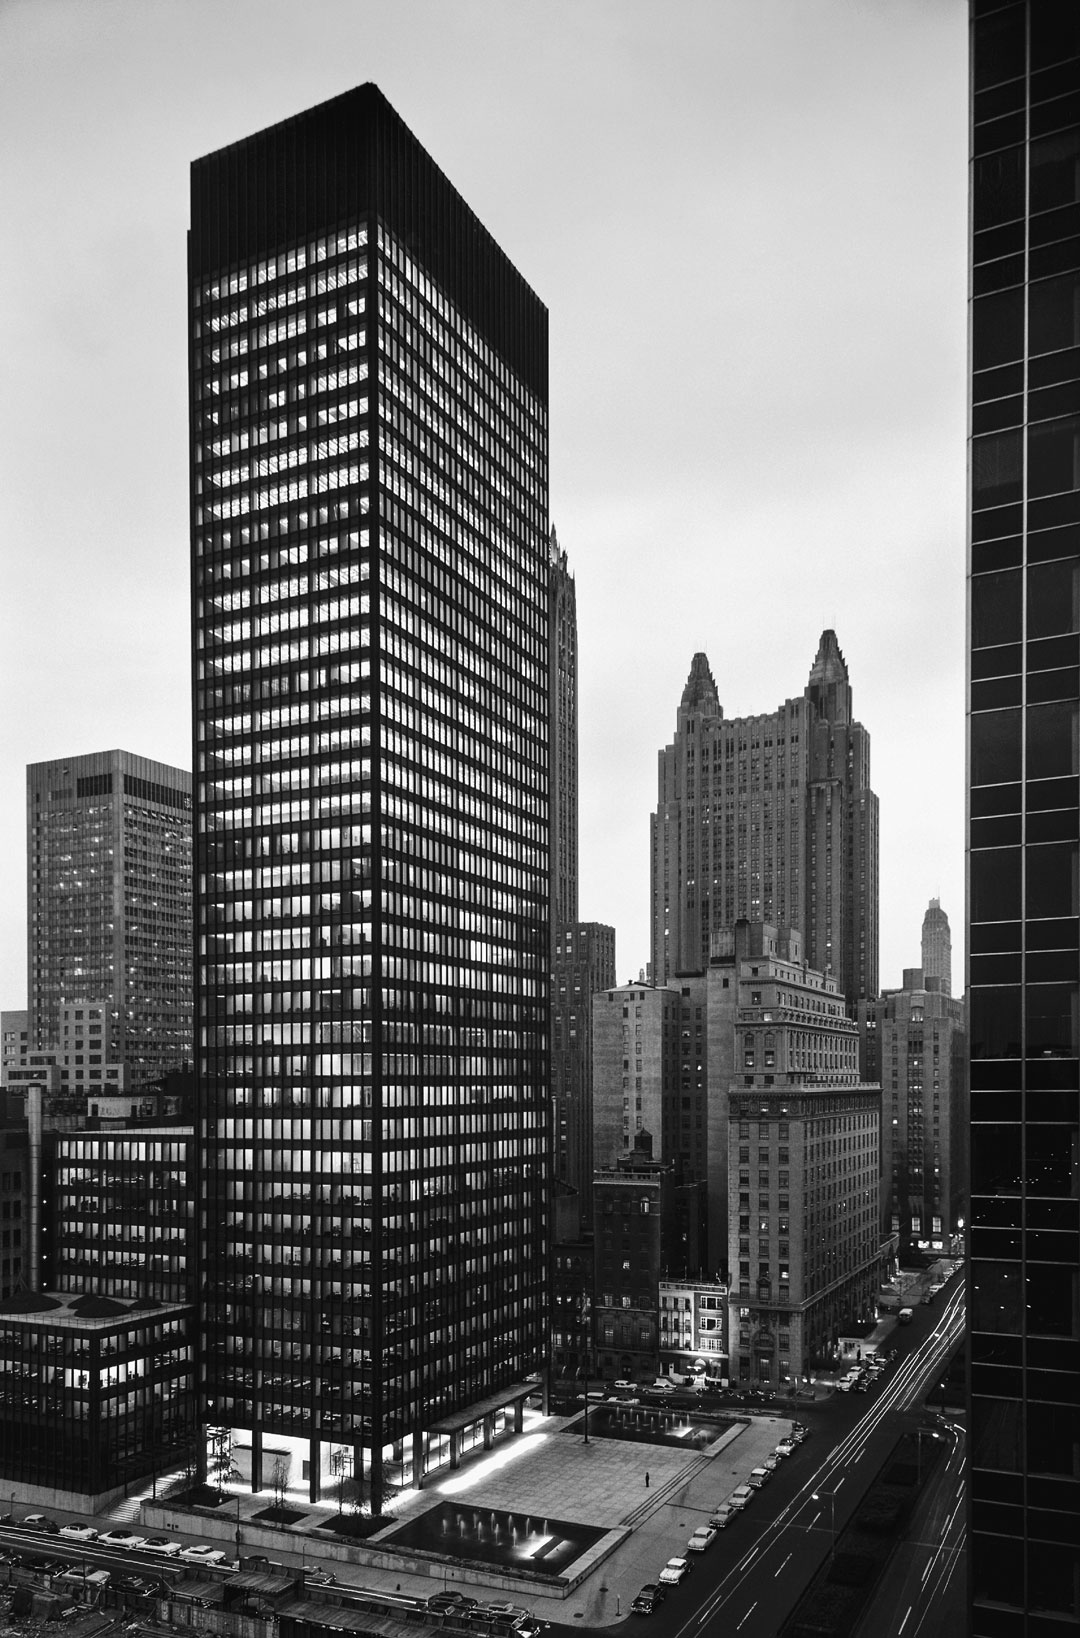 Ezra Stoller's Modern America: The Seagram Building